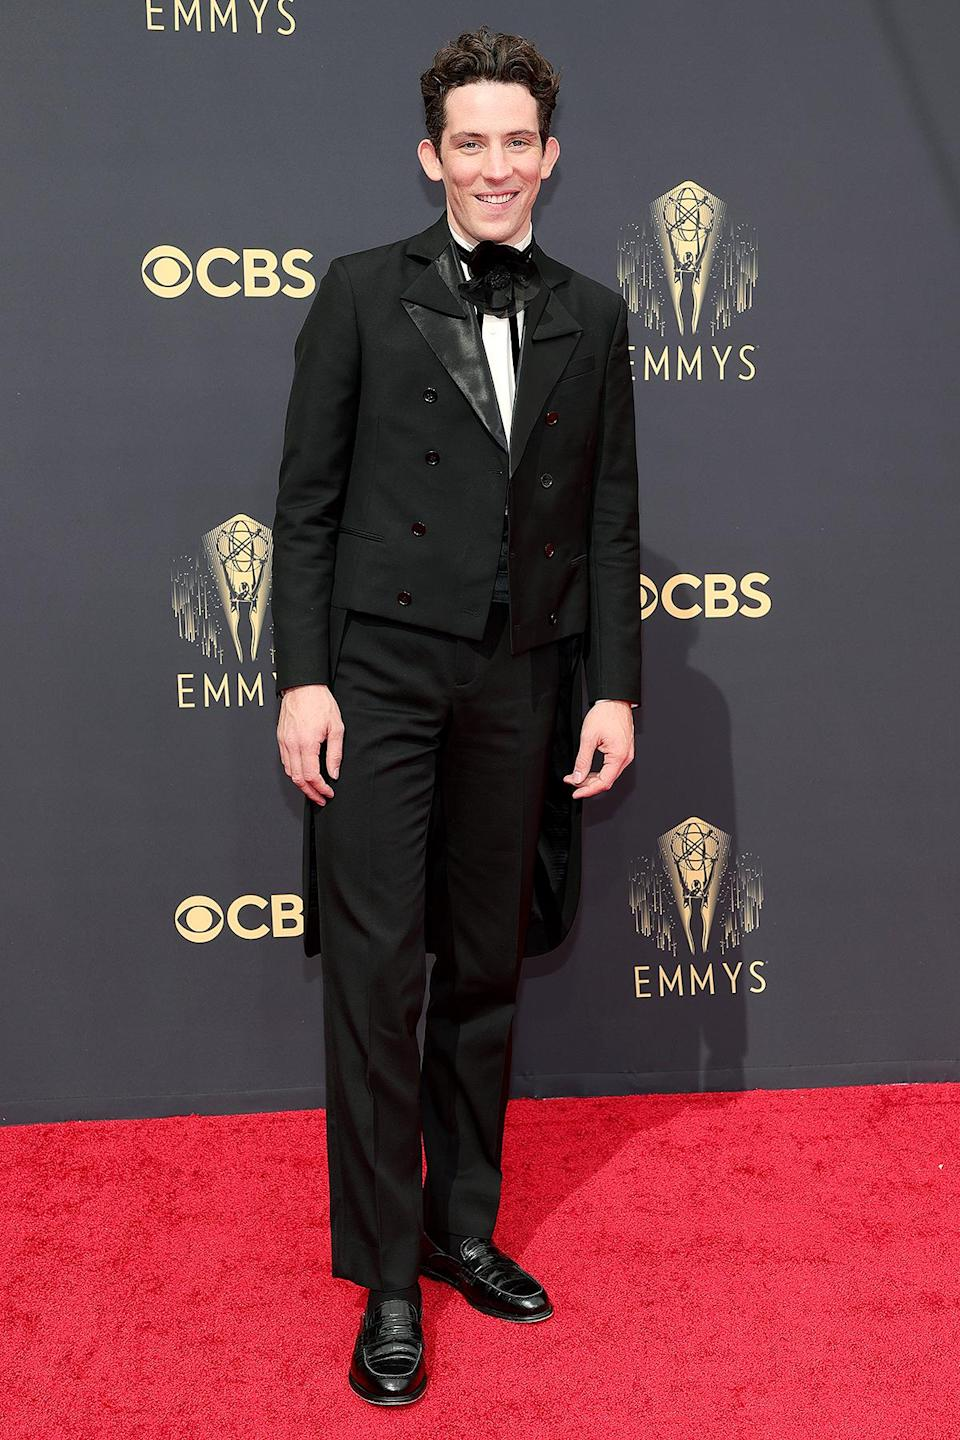 <p>took home the Emmy for outstanding lead actor in a drama series for his portrayal of Prince Charles in <em>The Crown</em>. In his acceptance speech, he shouted out his costar, Emma Corrin, who played opposite him as Lady Diana. </p>